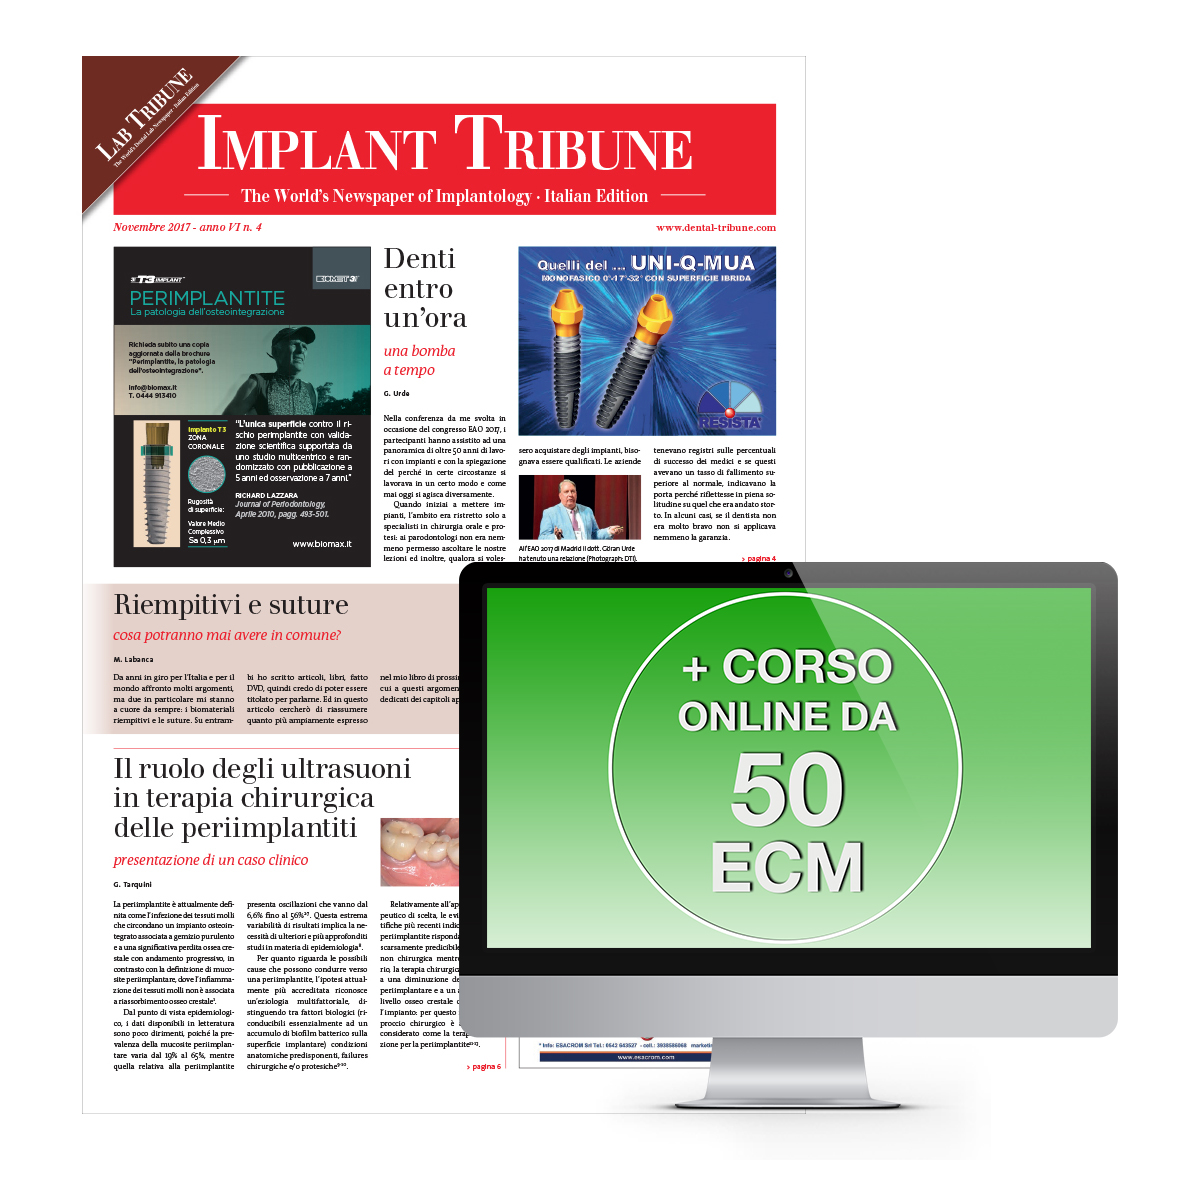 IMPLANT TRIBUNE E CORSO FAD DA 50 ECM